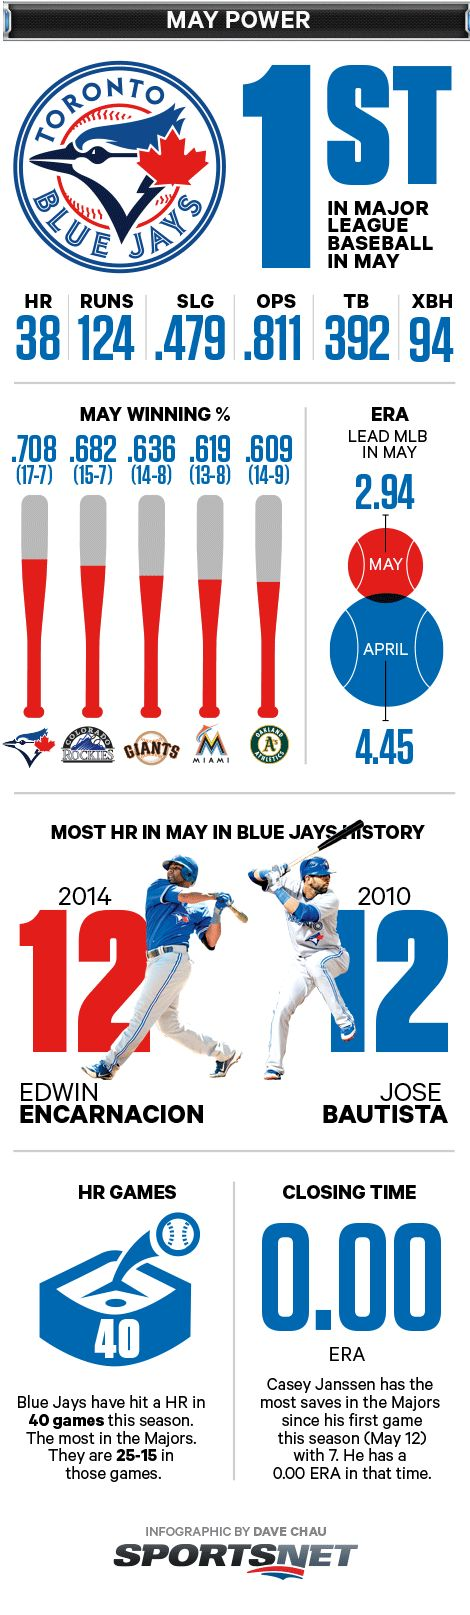 The month of May 2014 has been a very merry one for the Toronto Blue Jays, as the Bluebirds have surged to the top of the AL East, winning nine o...